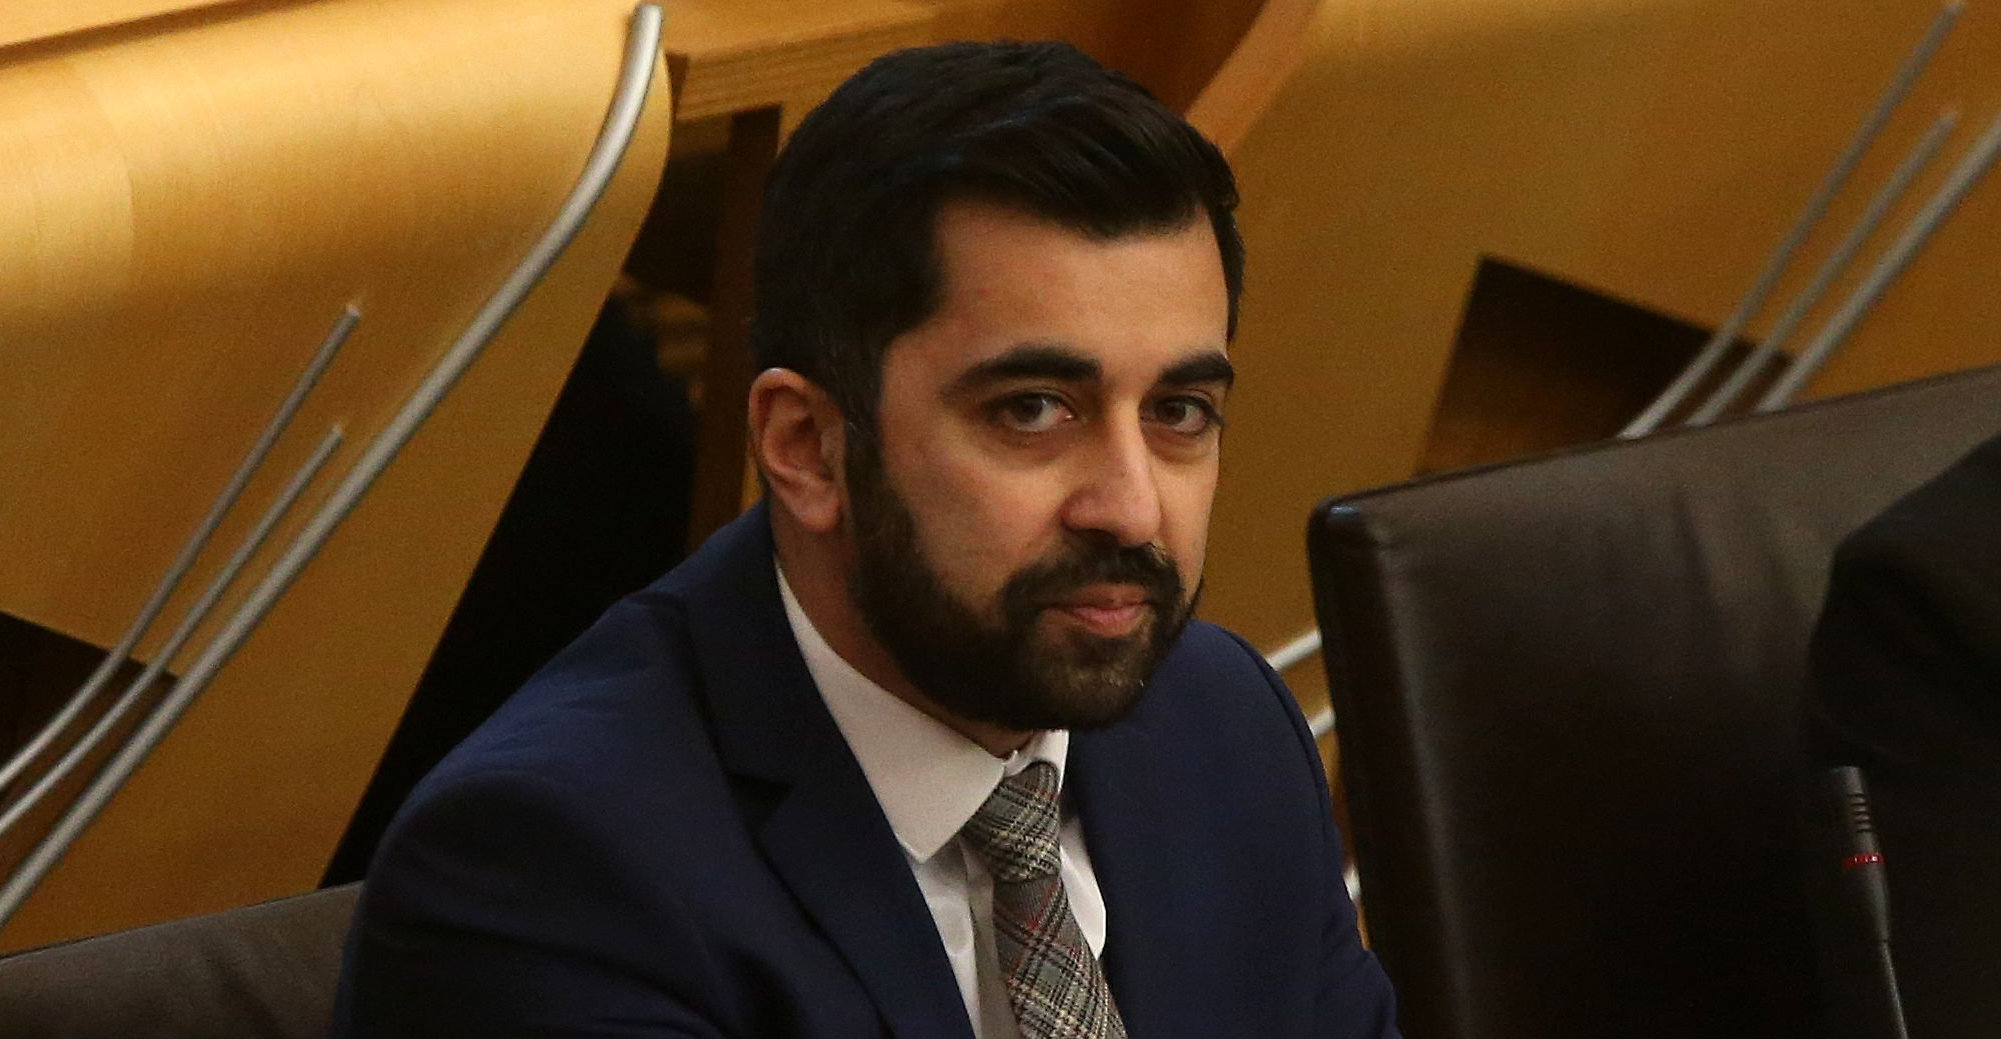 Transport Secretary Humza Yousaf says Gaffney received 'barely a tickle on the wrist'